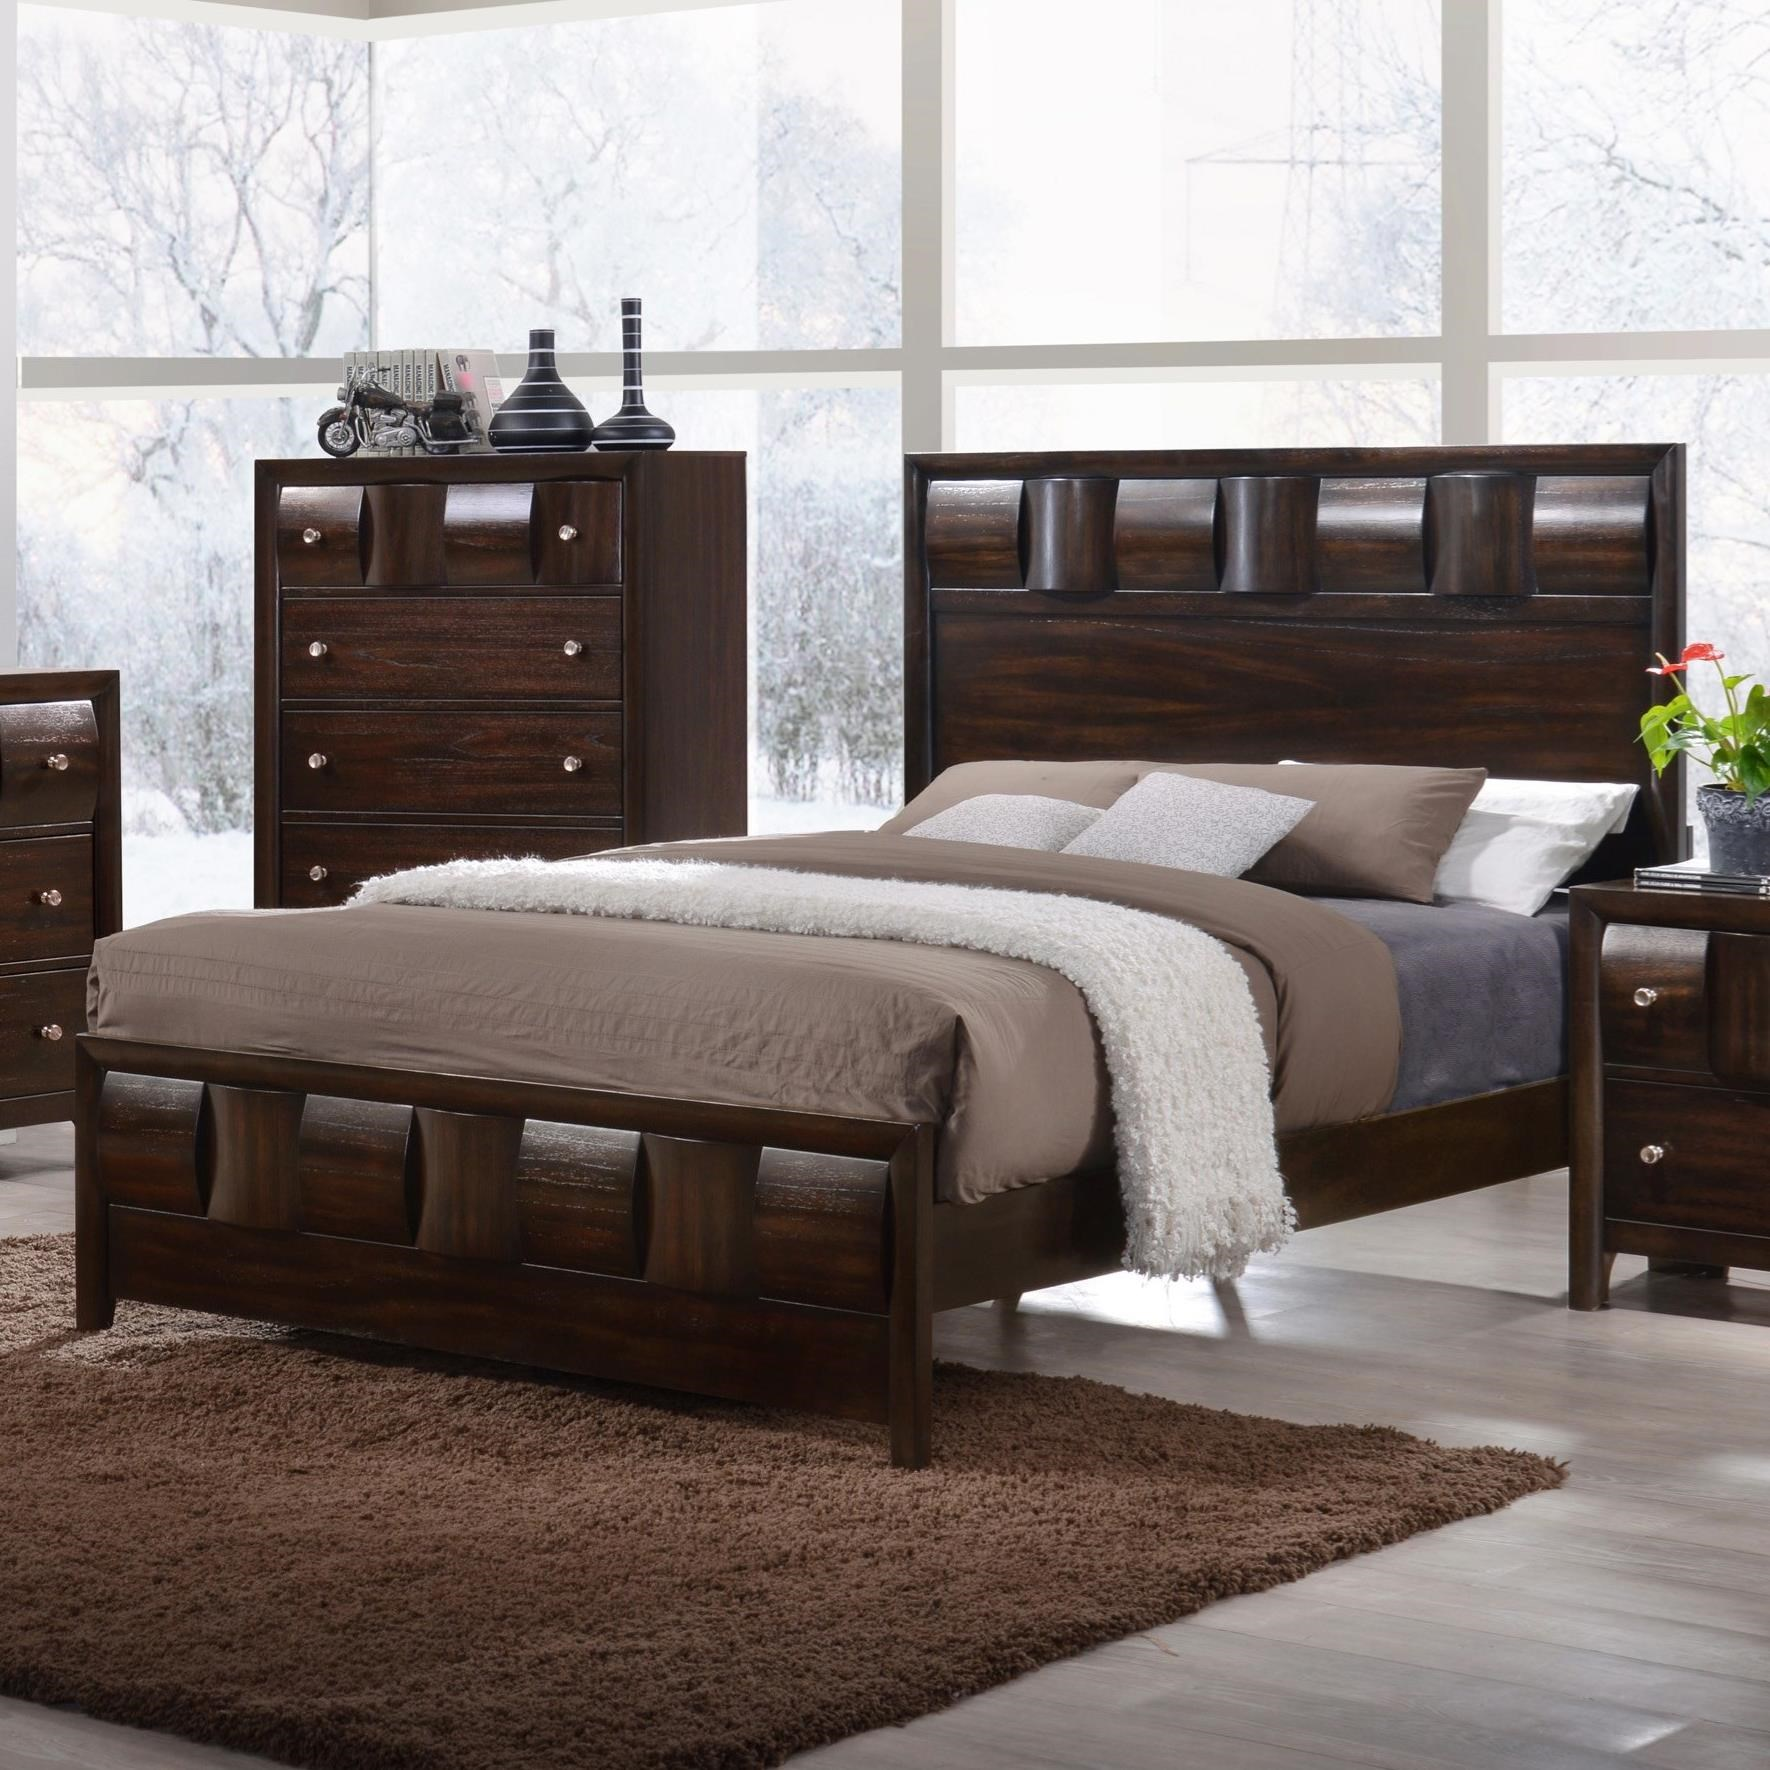 Crown Mark Delrey Queen Low Profile Bed - Item Number: B6800-Q-HBFB+KQ-RAIL